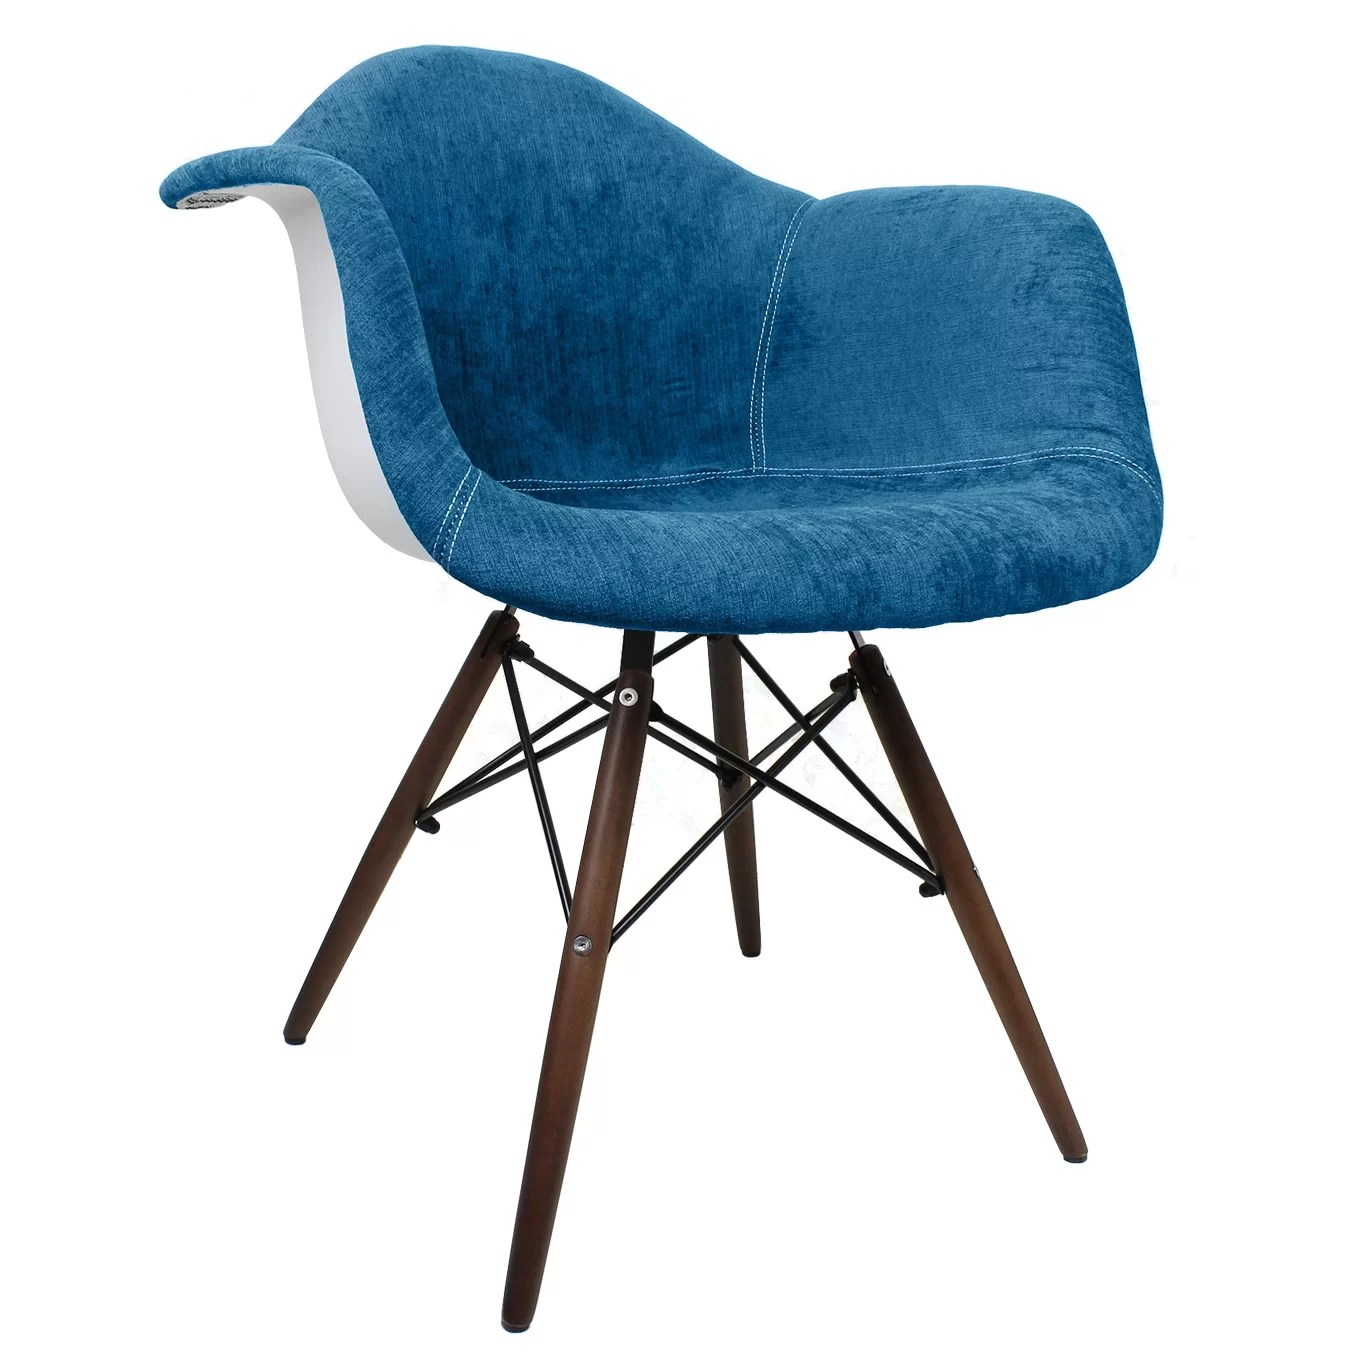 Blue Accent Chair With Arms Emodern Decor Style Arm Chair Wayfair